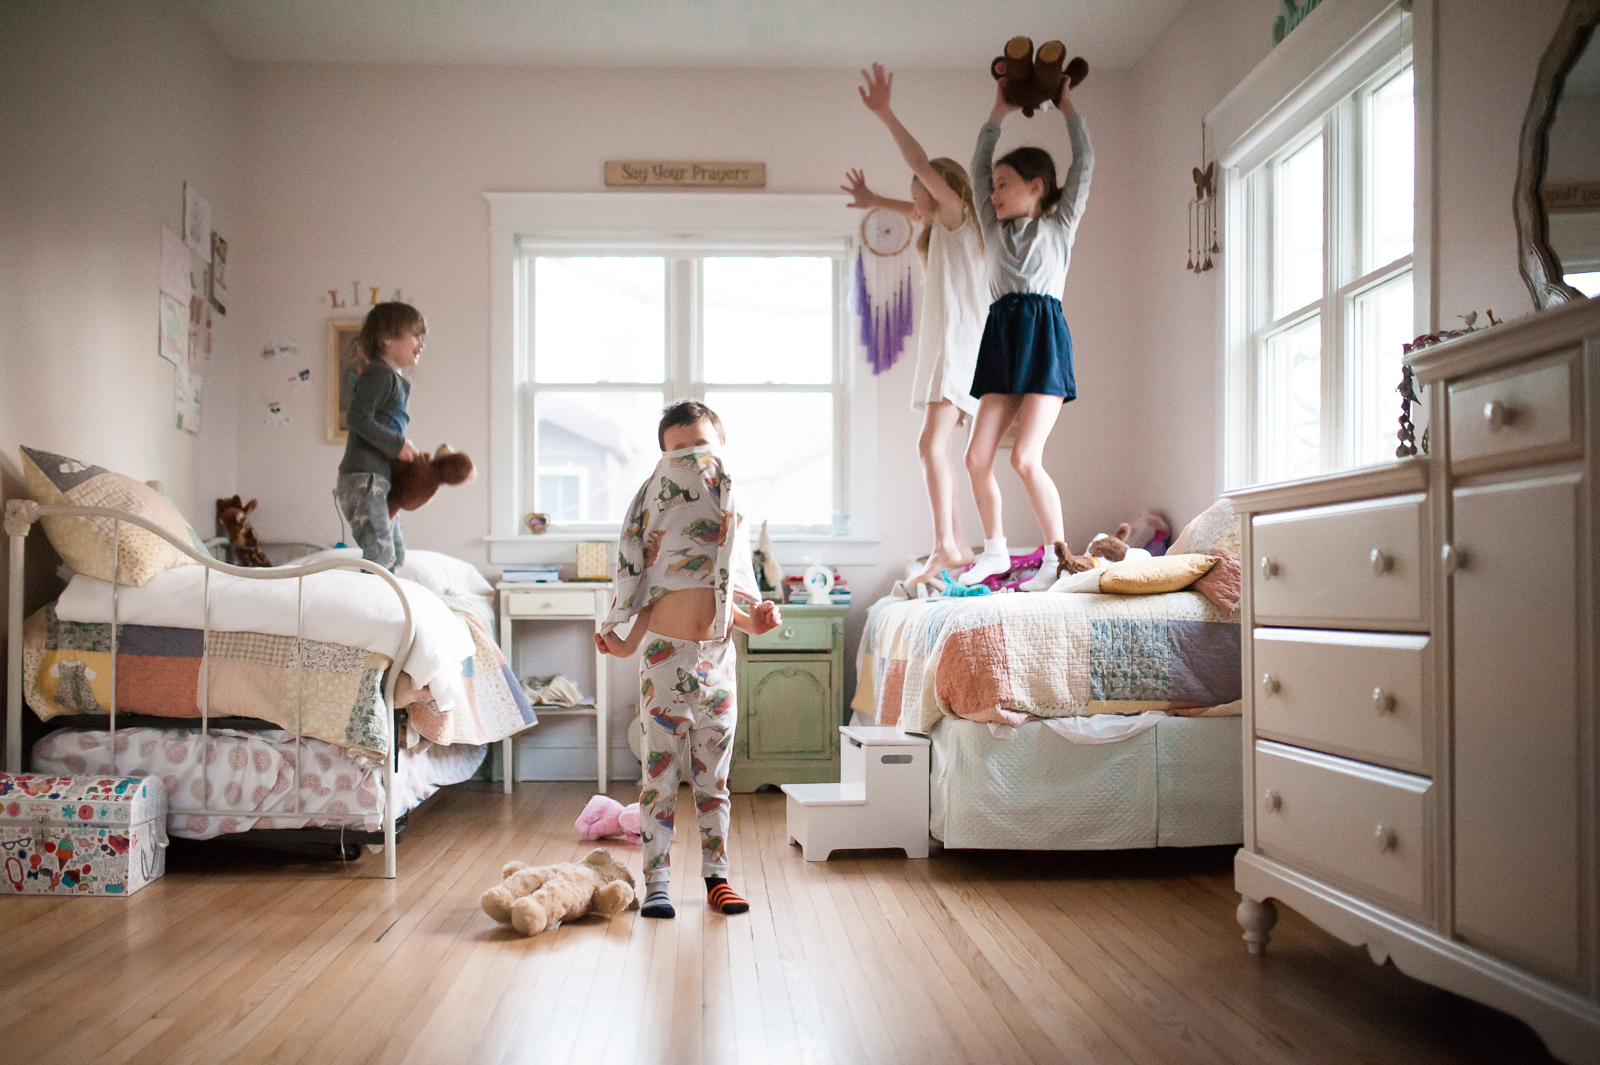 pic of kids jumping on a bed and getting dressed by Erin Konrath